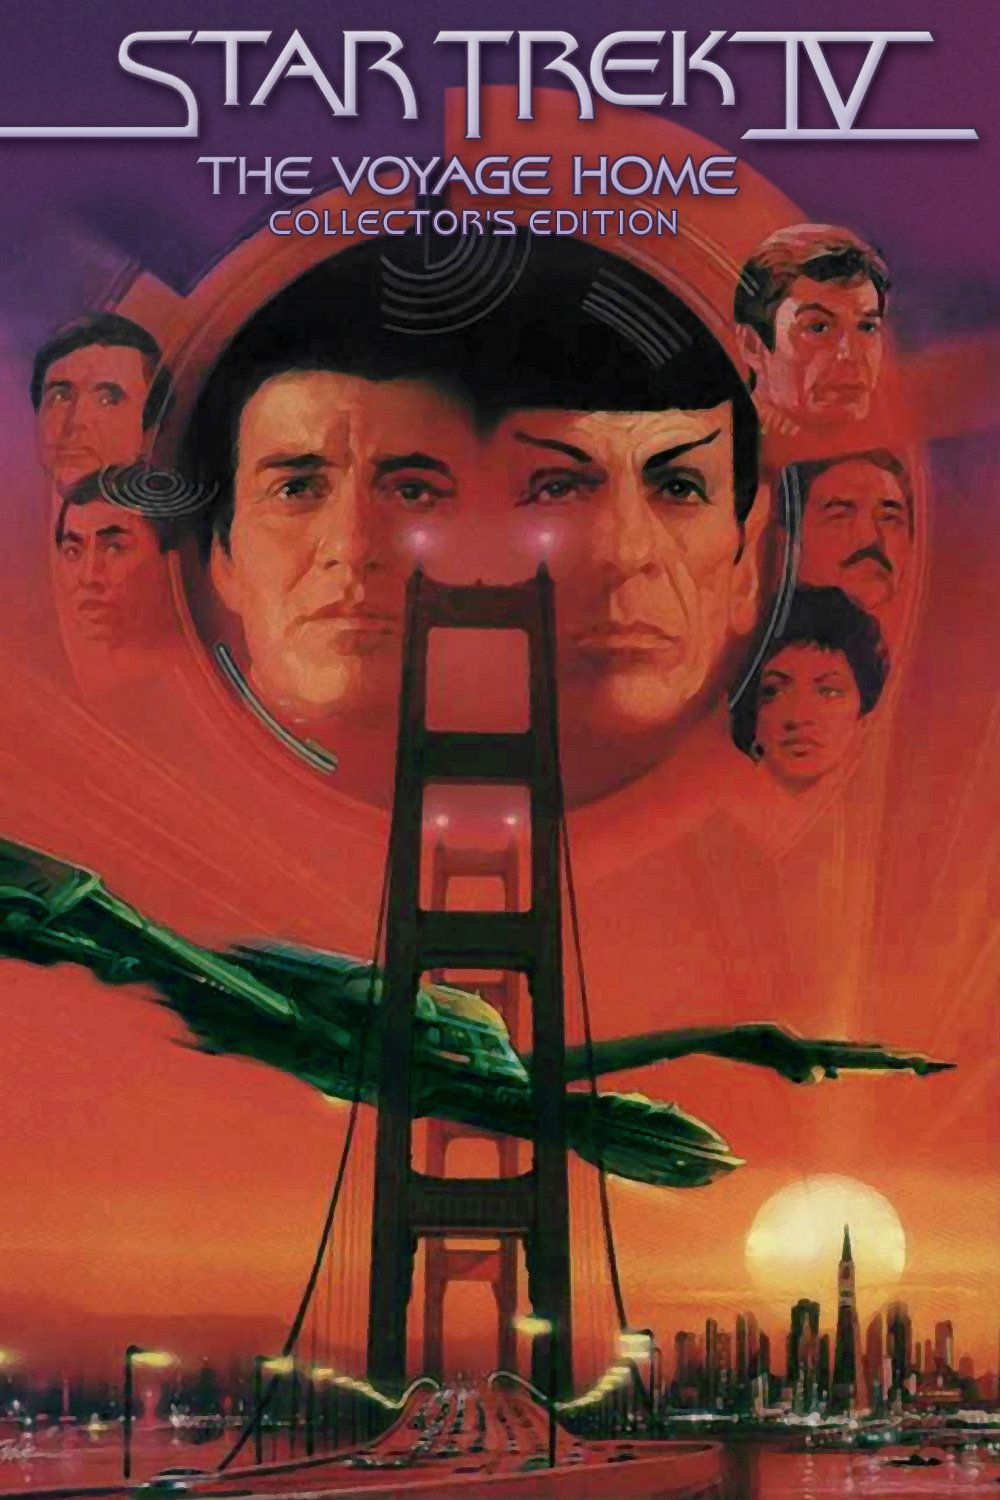 Star Trek IV The Voyage Home (With images) Star trek